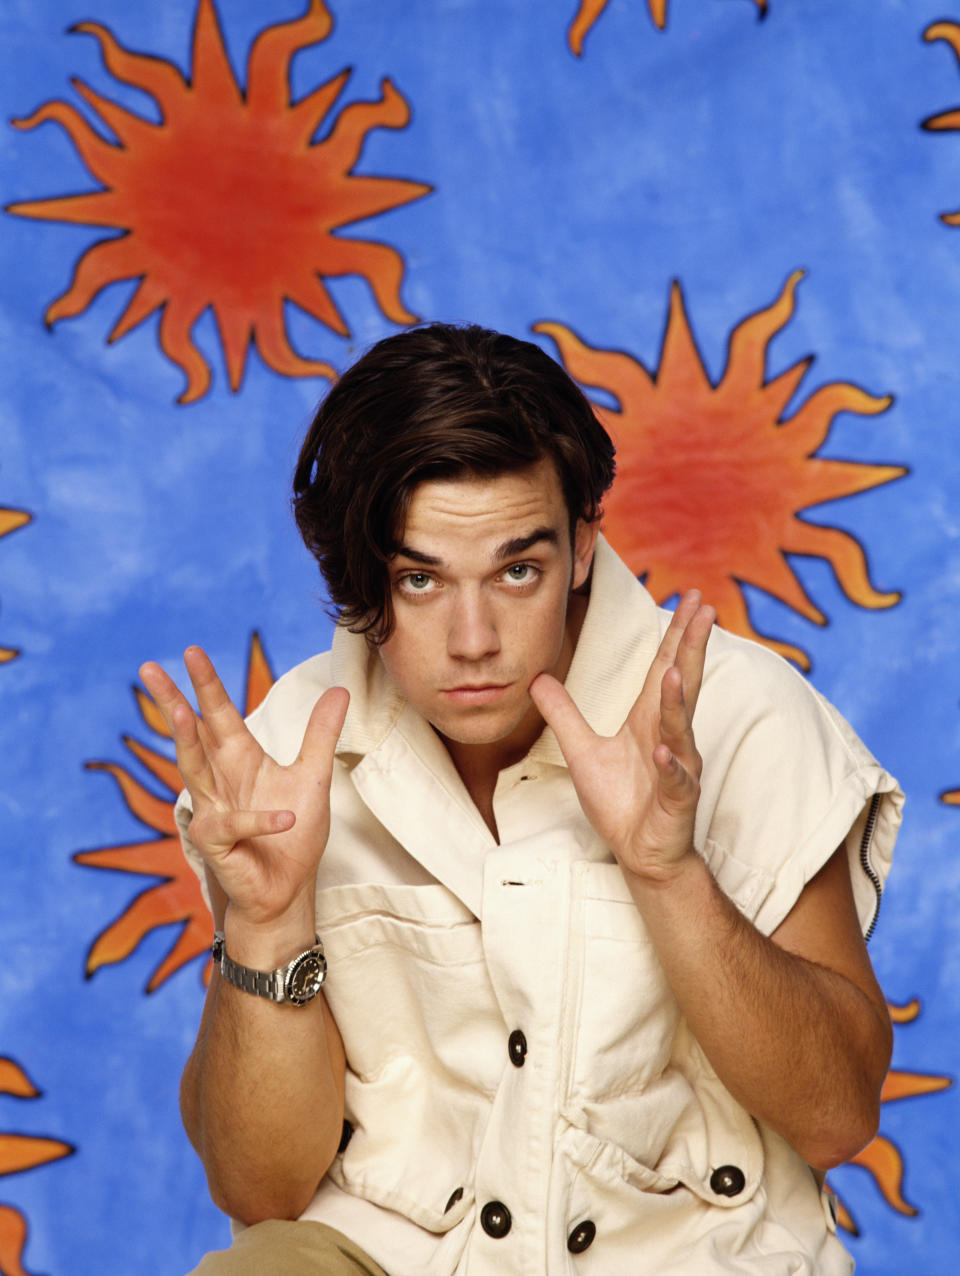 Singer Robbie Williams of English boy band Take That, circa 1994. (Photo by Tim Roney/Getty Images)